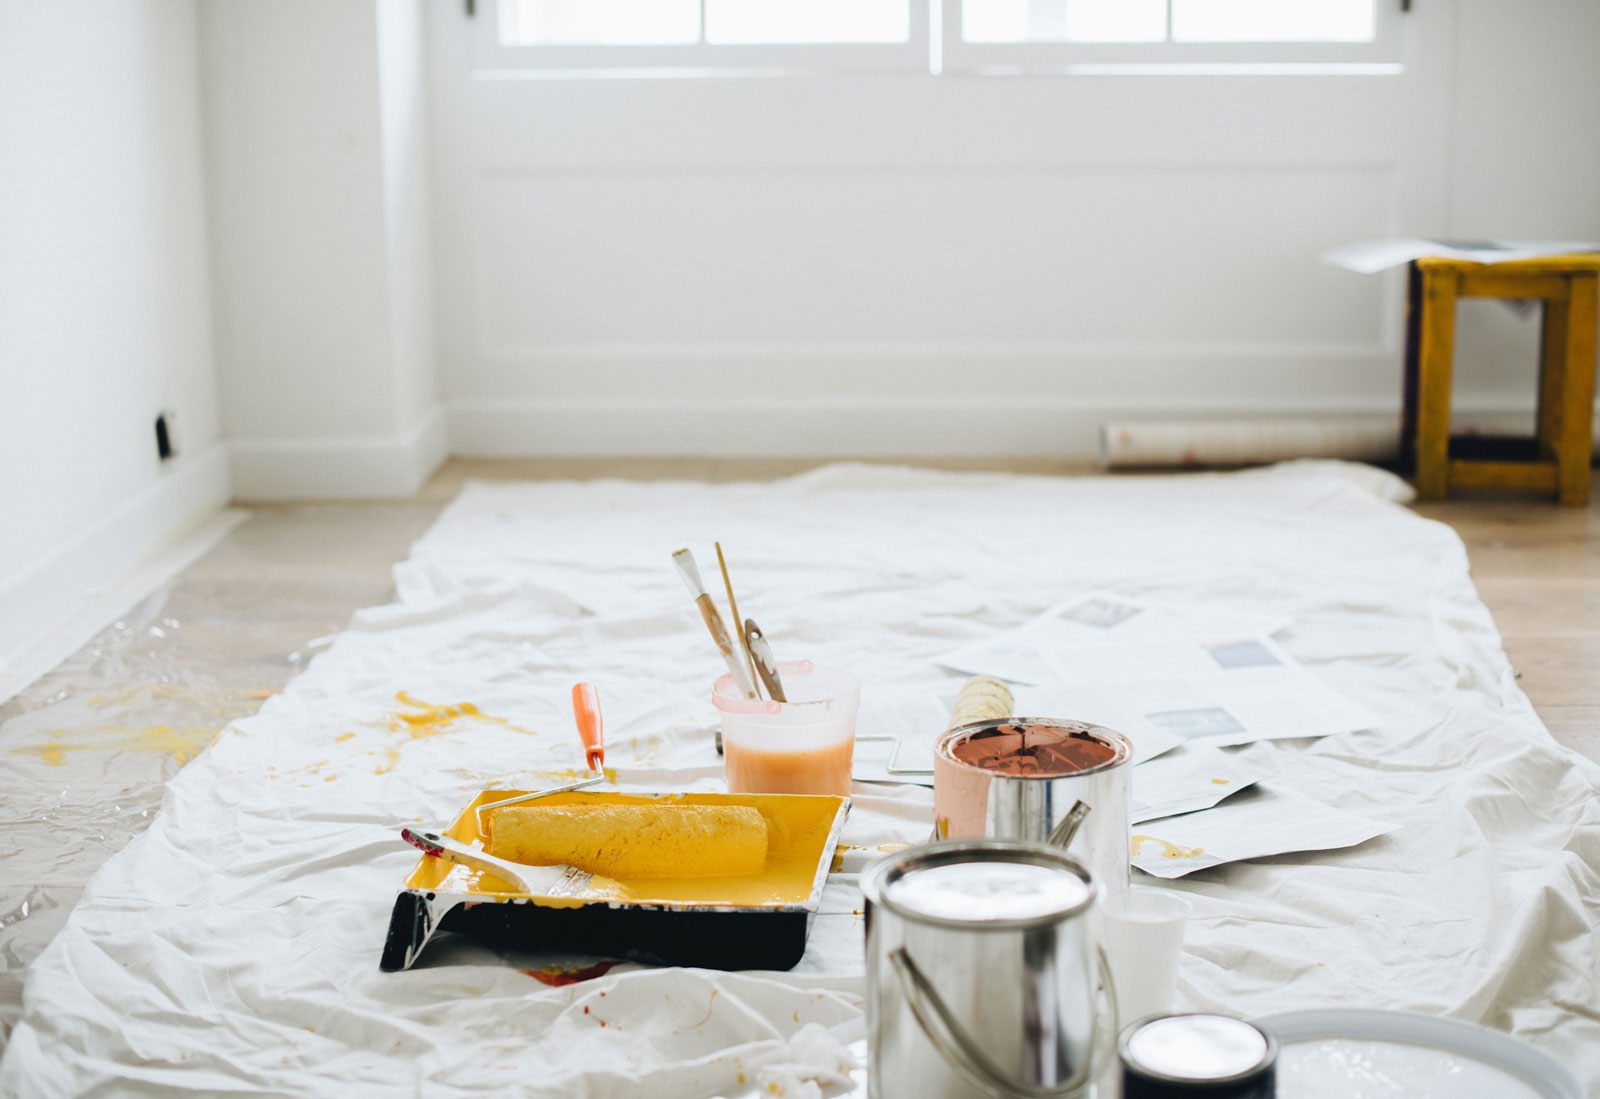 Paint | Everything You Need When Preparing A Baby's Room